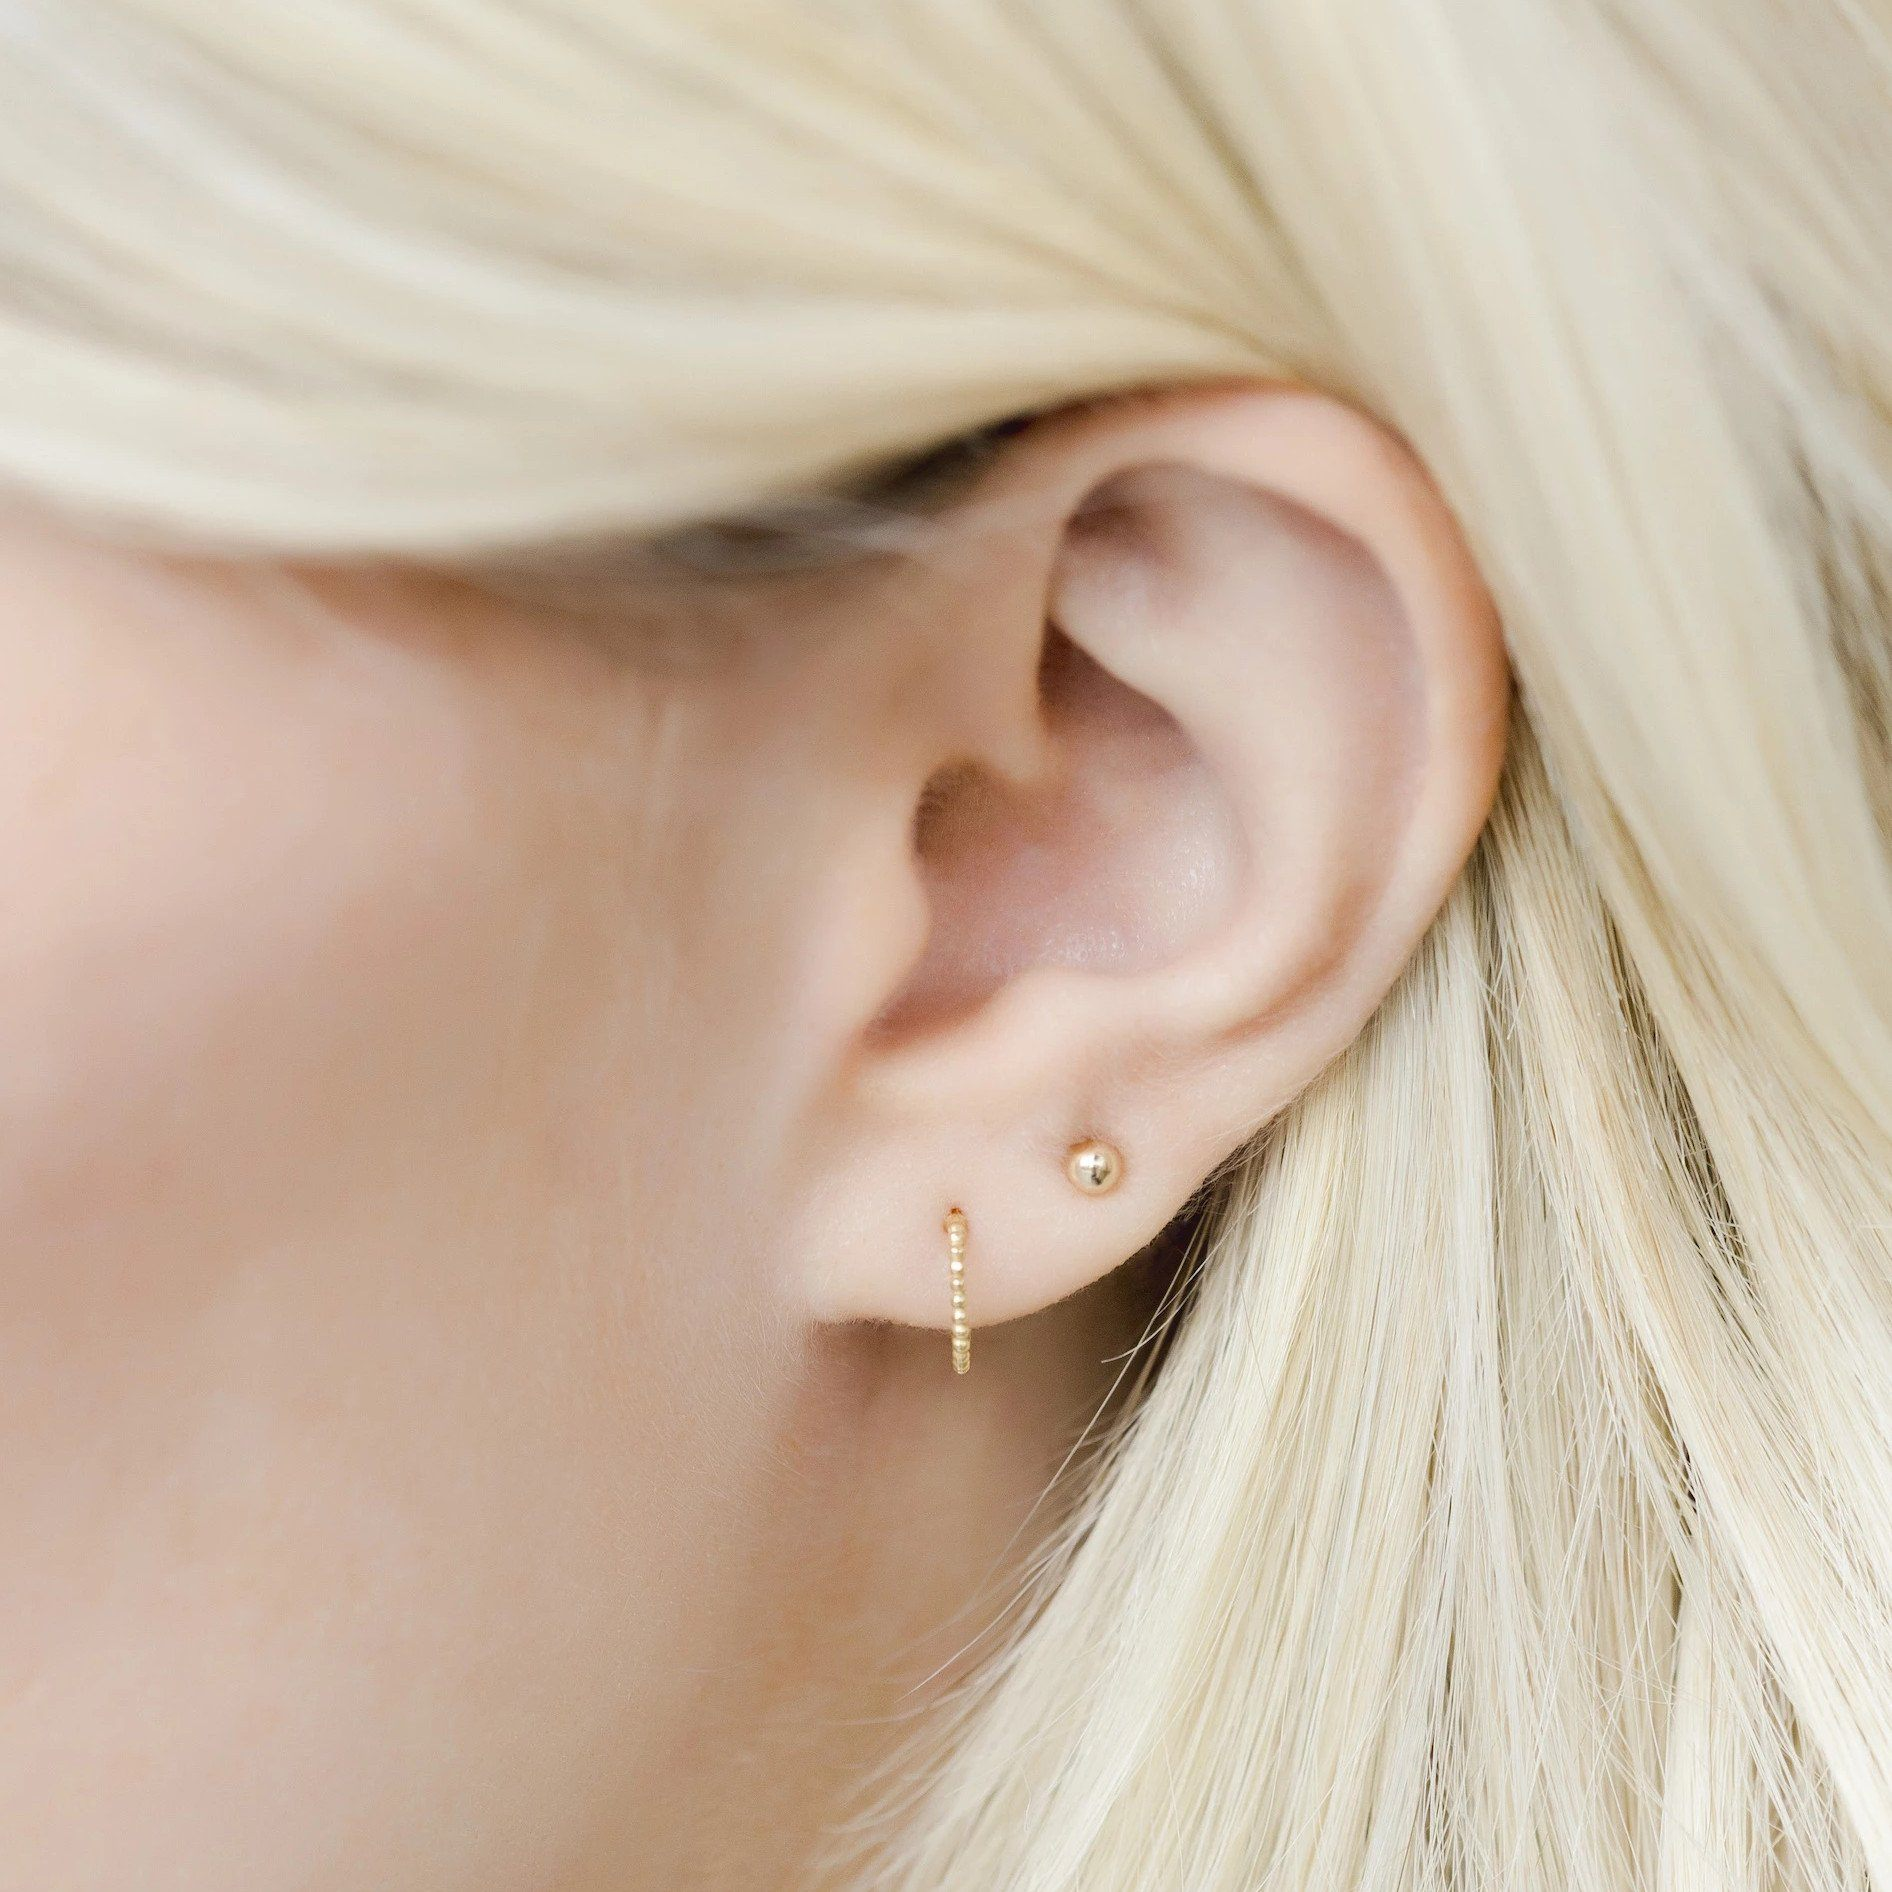 The Beaded Hoop Studs are a beautiful, classic pair of hoop earrings that you'll never want to take off. Handmade in California by Katie Dean Jewelry. Nickel free and hypoallergenic.